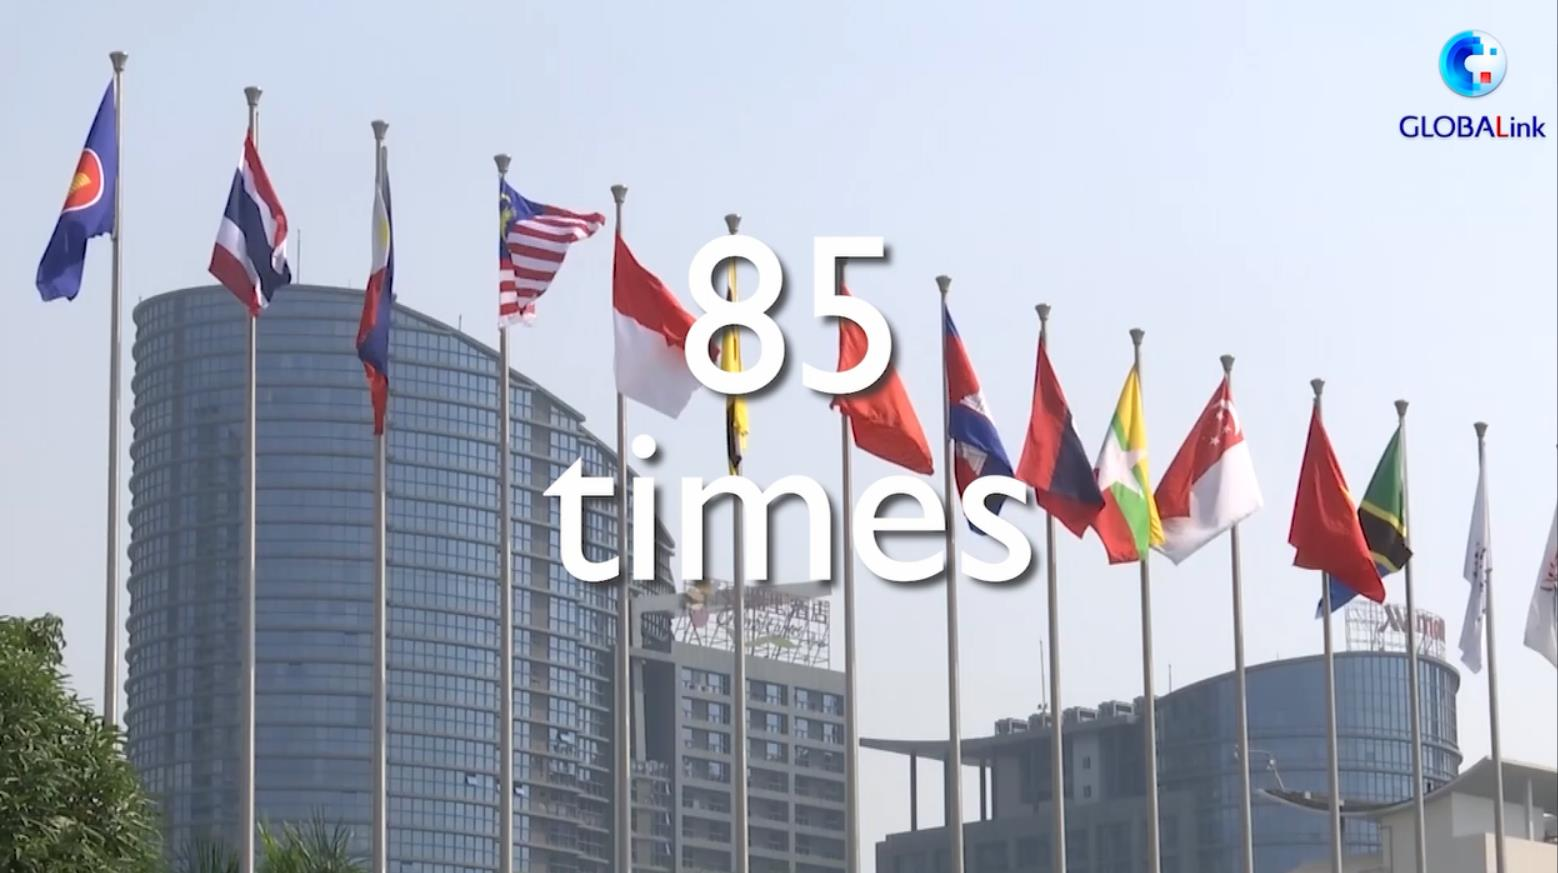 GLOBALink | China-ASEAN trade skyrockets in 30 years, aims for higher ground